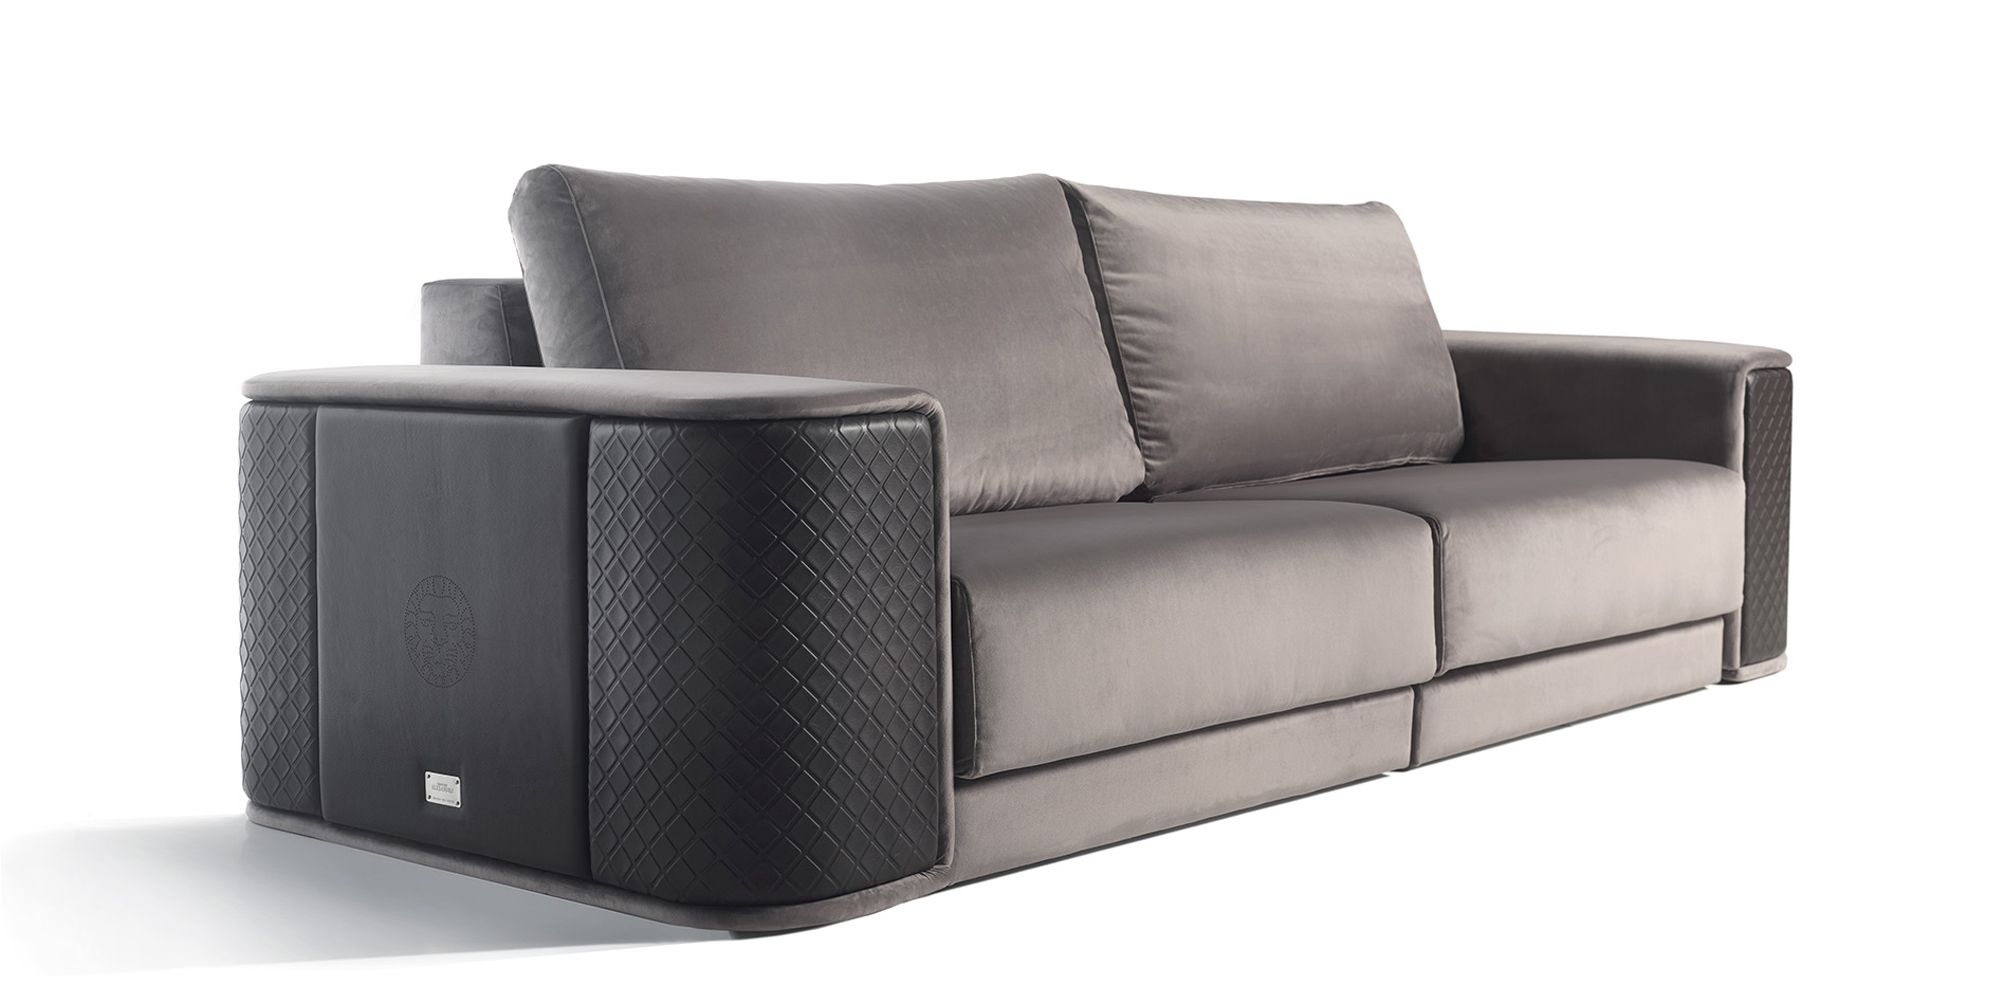 Super Yacht Sofa The Master Sofa Is Perfect For Yachts With Its  # Muebles Para Cevicheria